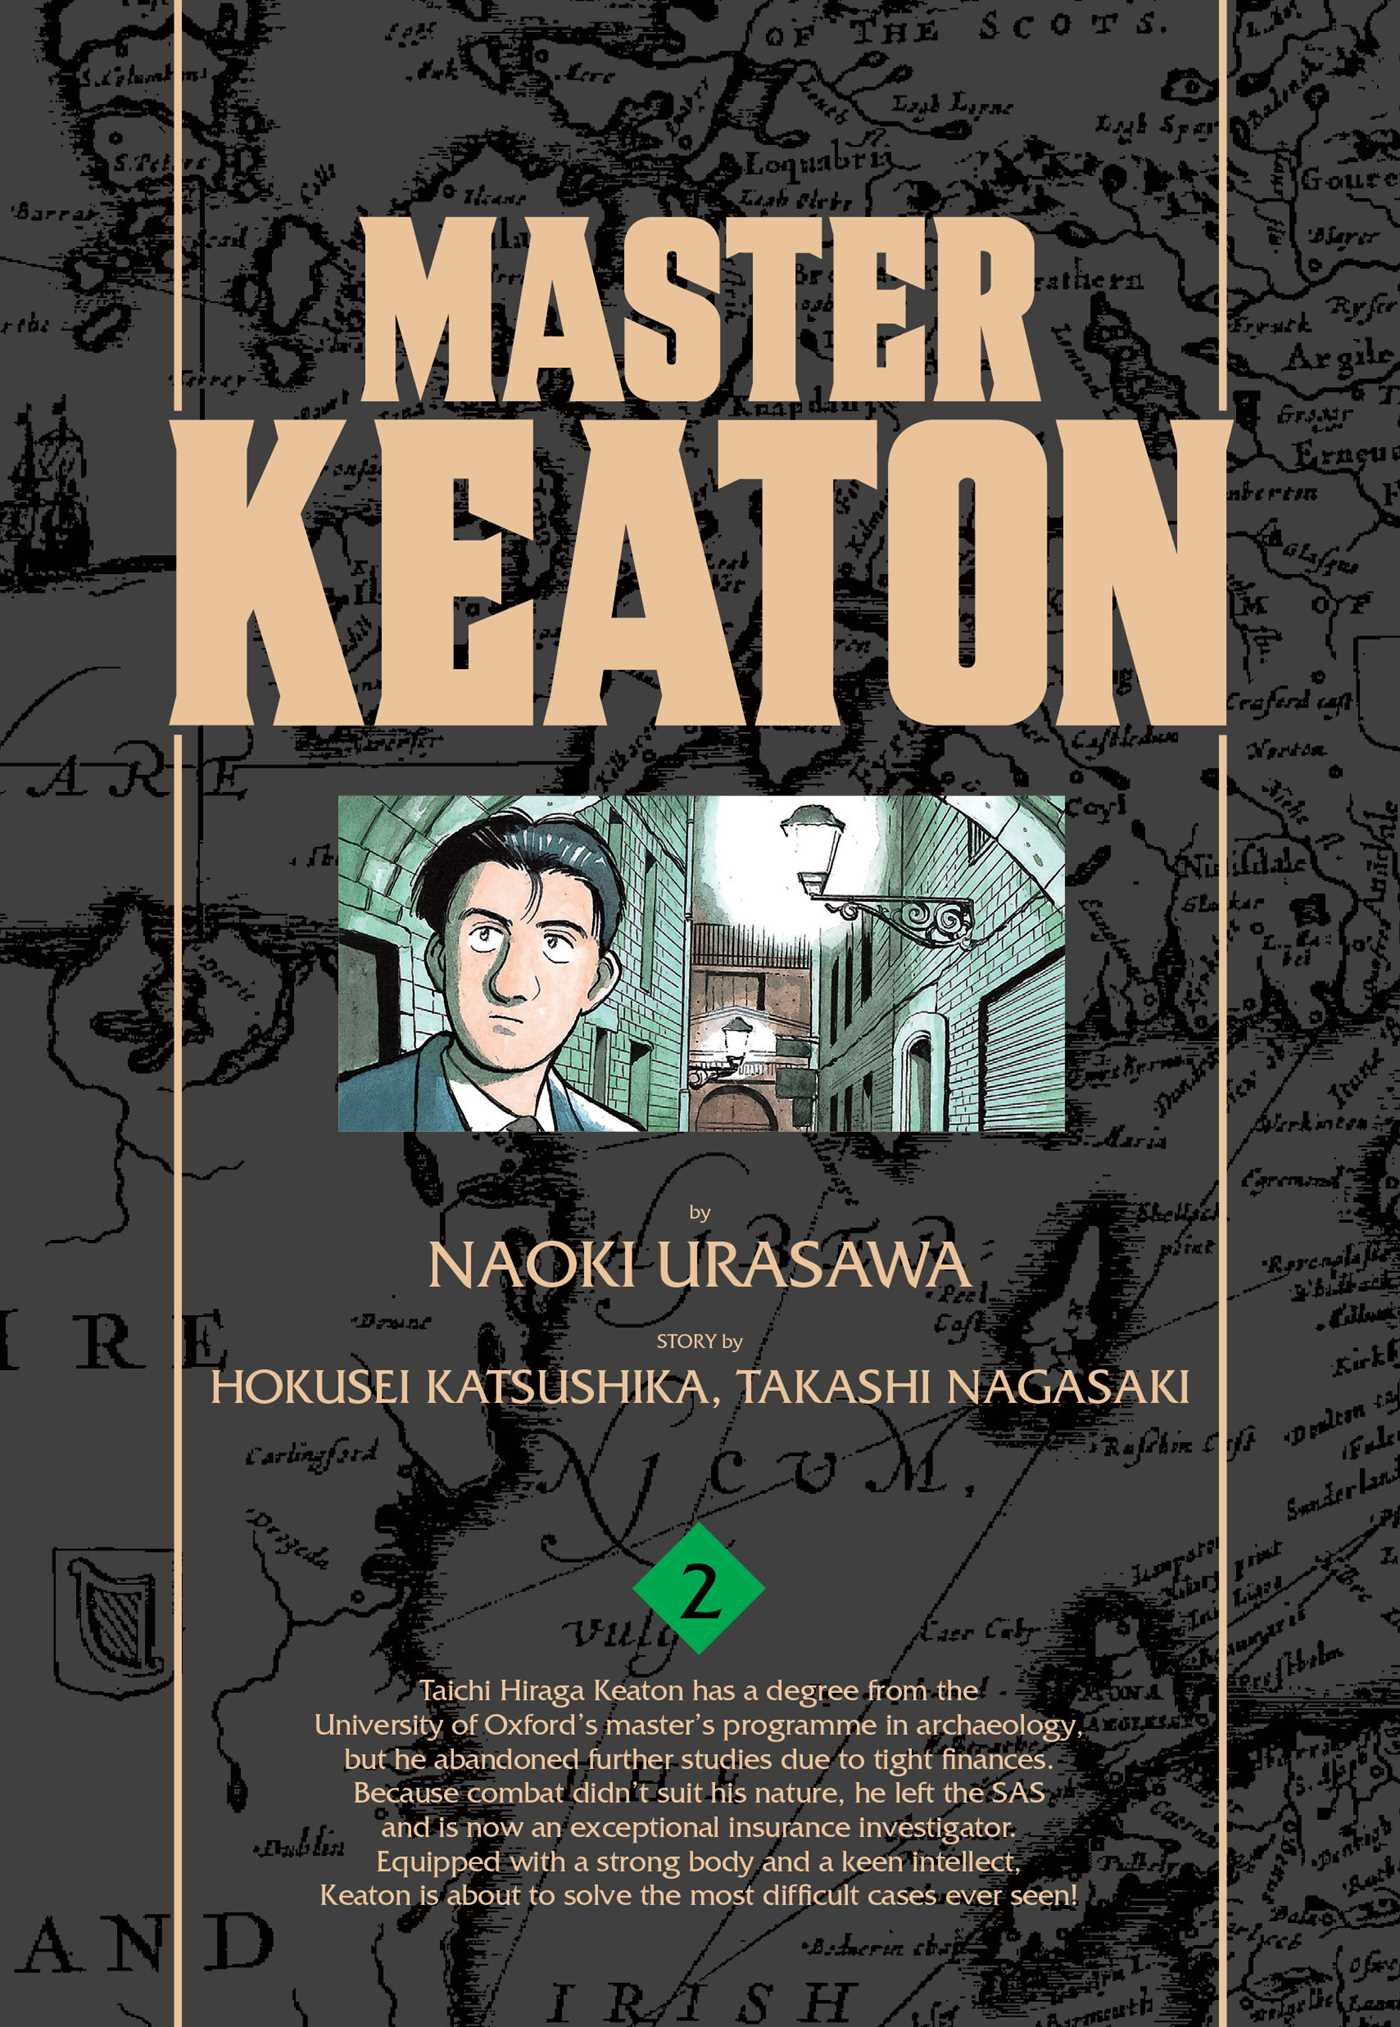 Master-keaton-vol-2-9781421575919_hr